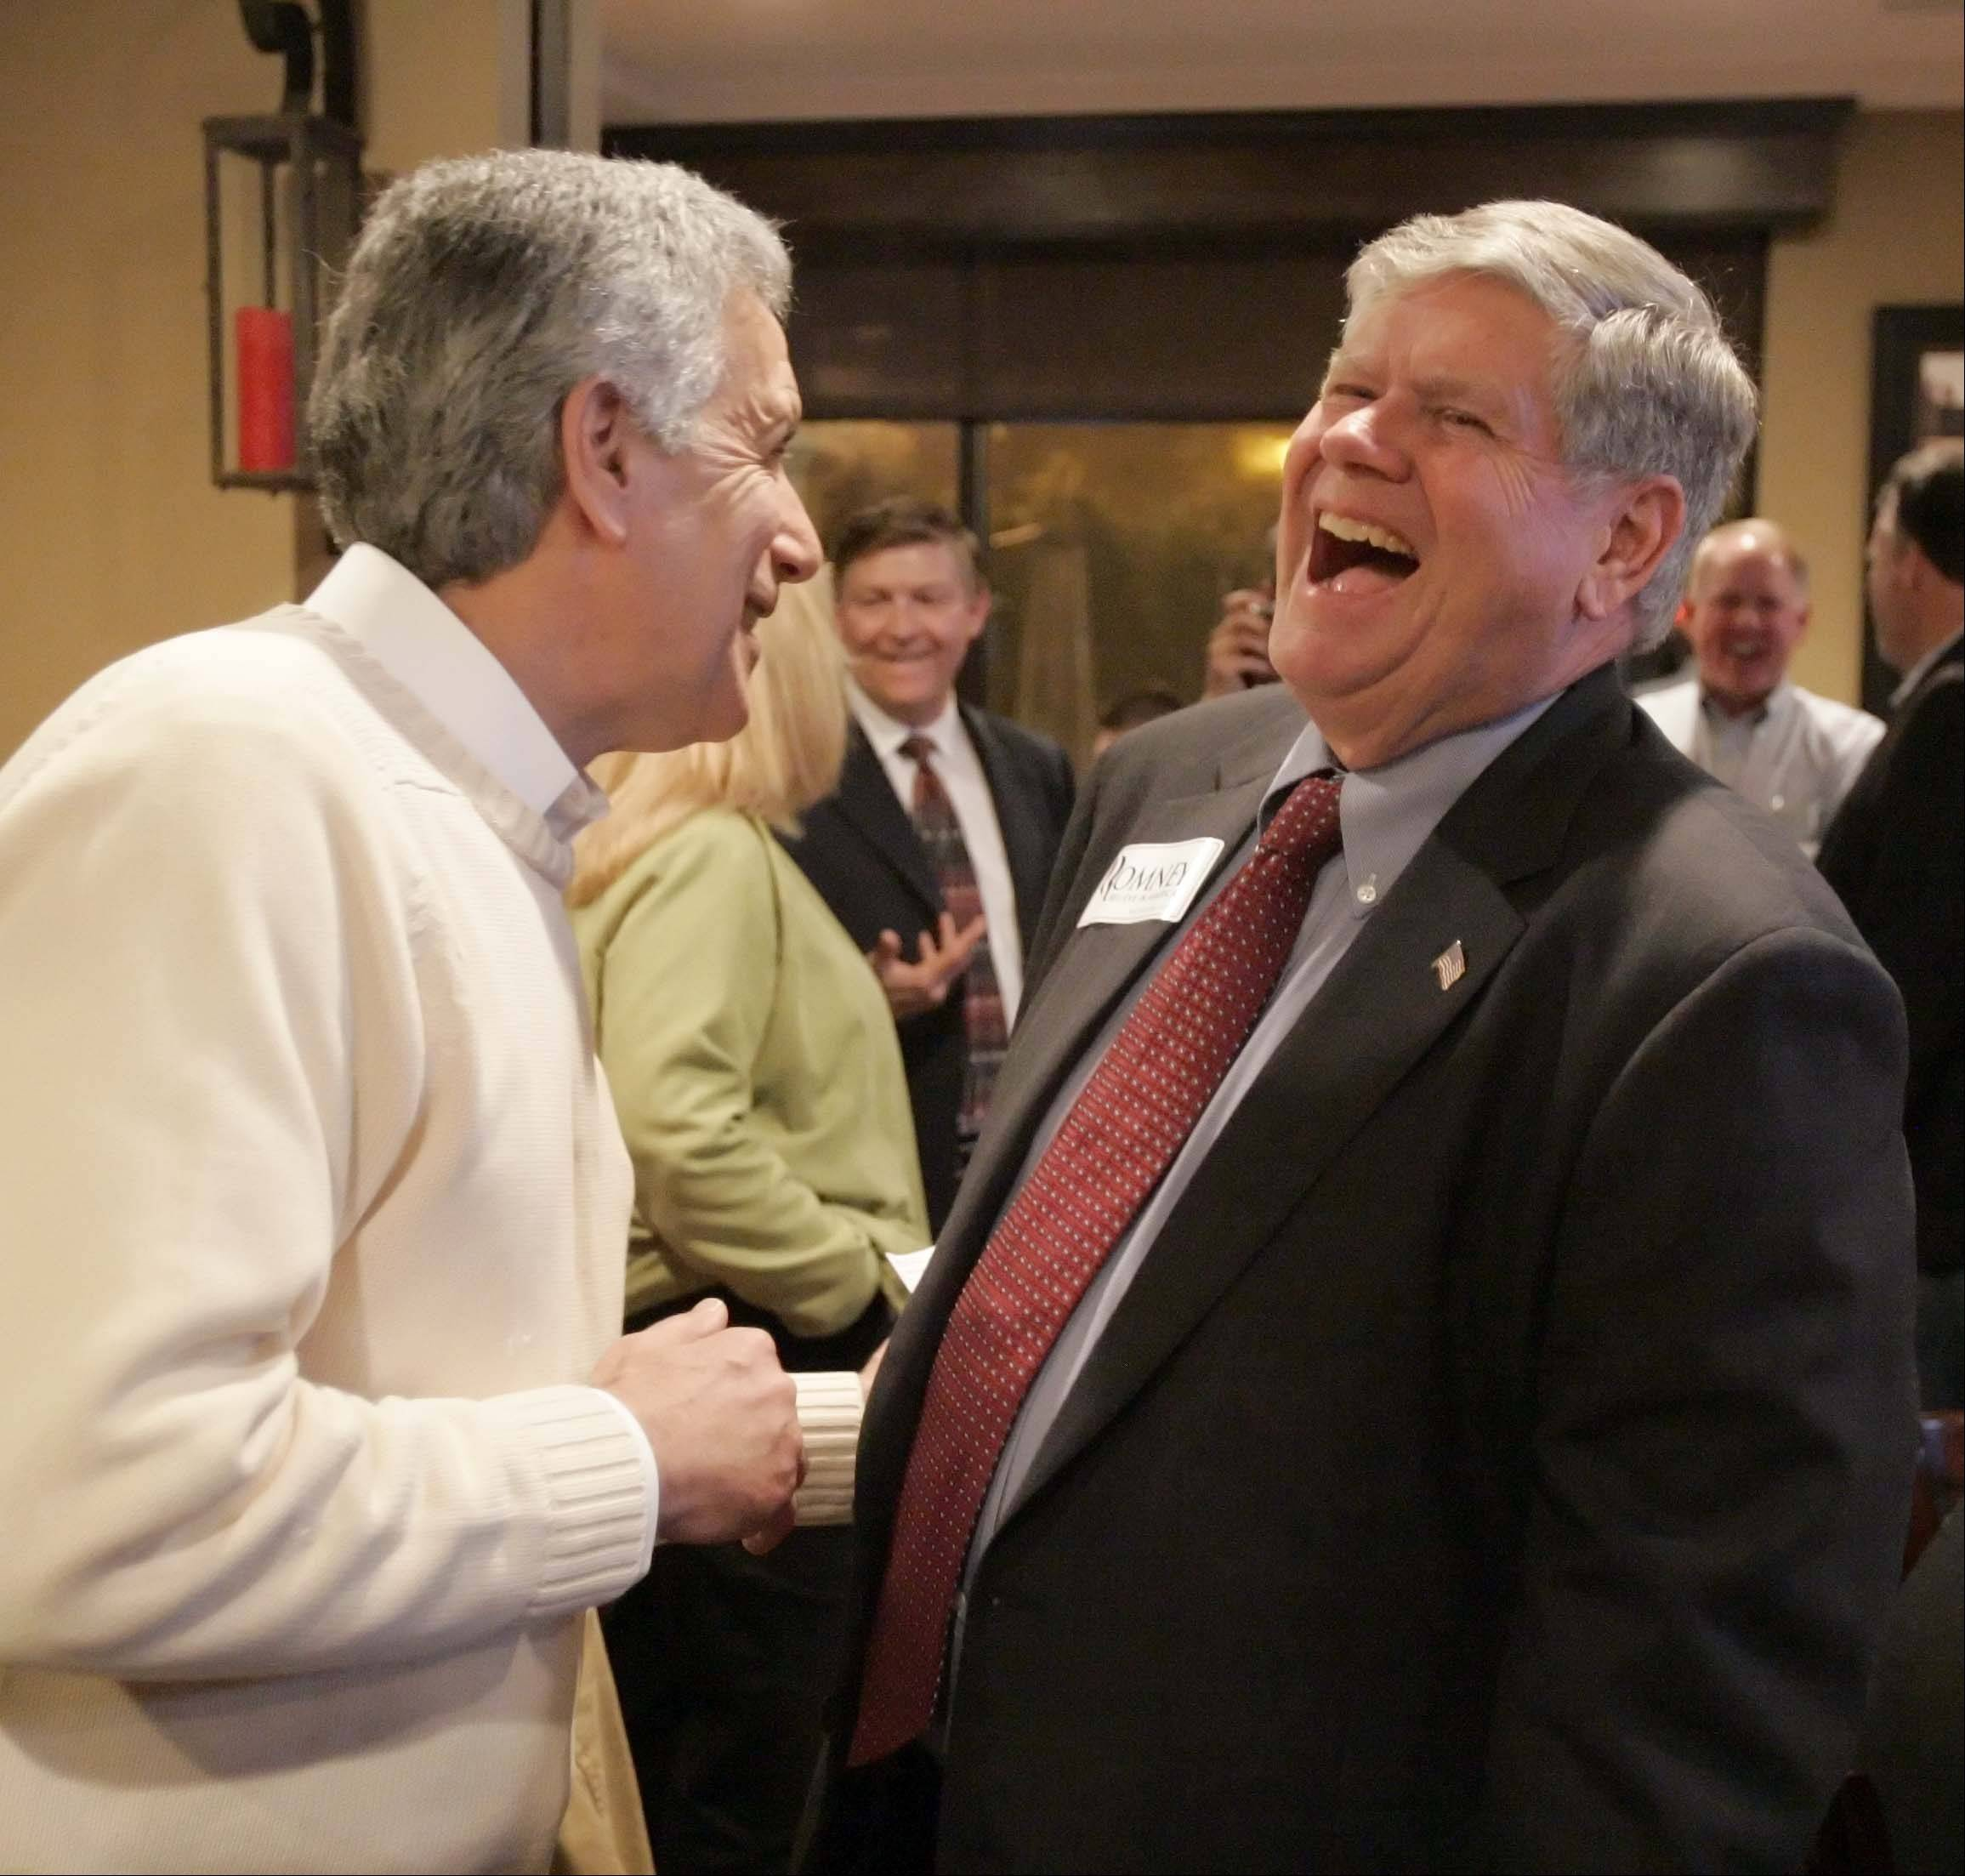 Kane County Board Chairman-elect Chris Lauzen of Aurora shares a laugh with Jim Oberweis of Sugar Grove Tuesday as election results flow in at a Kane County Republican Party in Geneva. Oberweis was elected state senator in the 25th District, according to unofficial results.